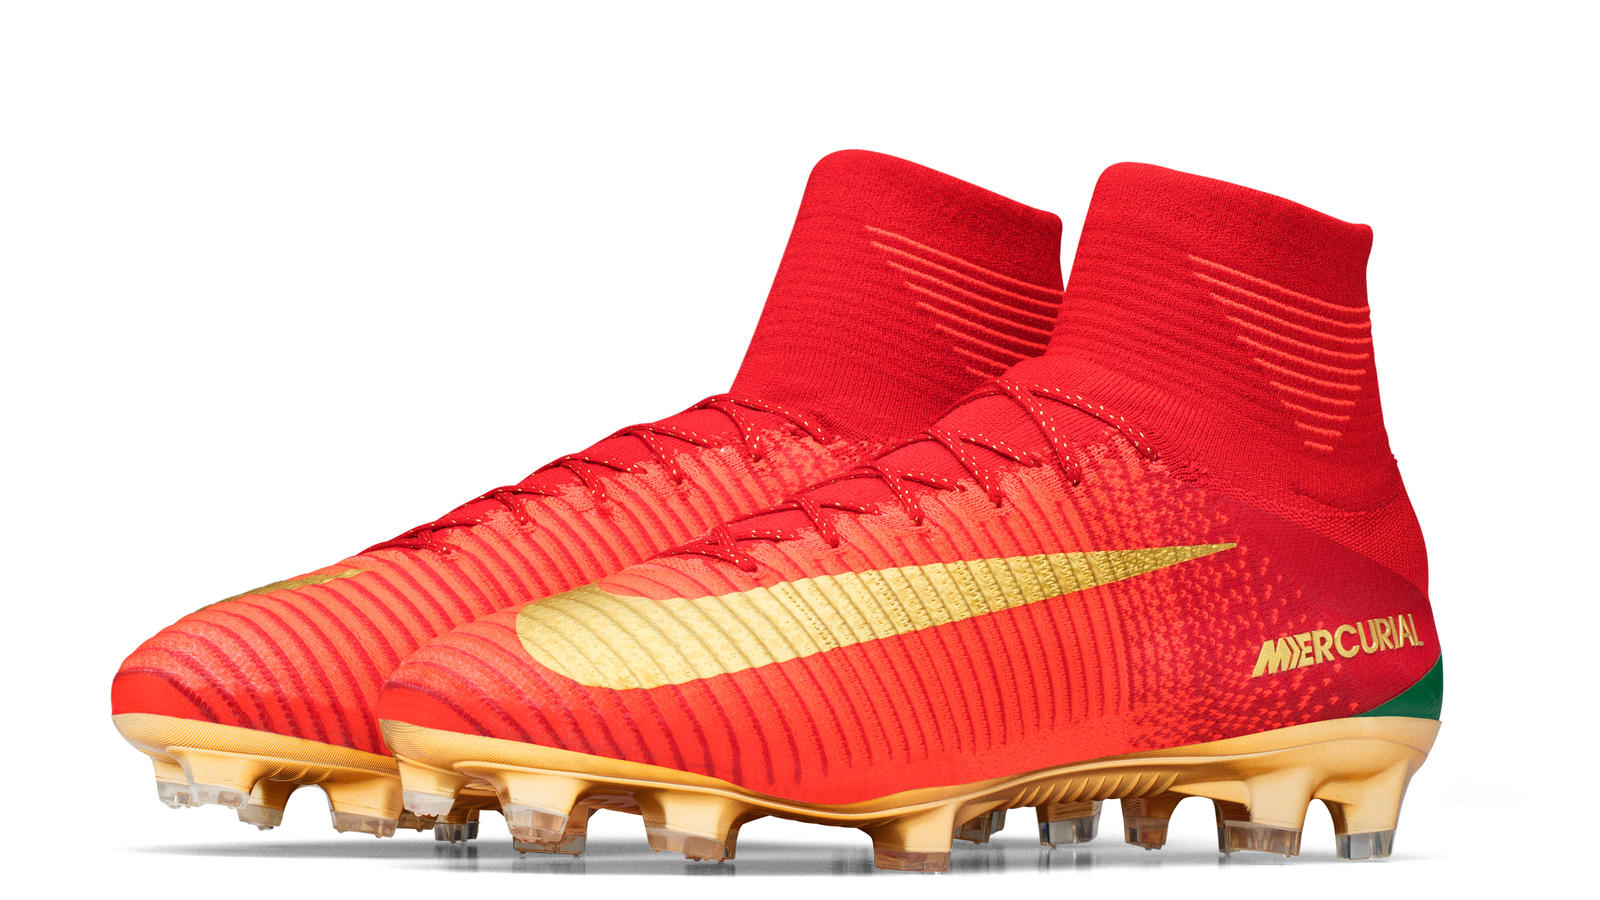 nike shoes mercurial superfly of cr7 shoes 2019/2020 922845